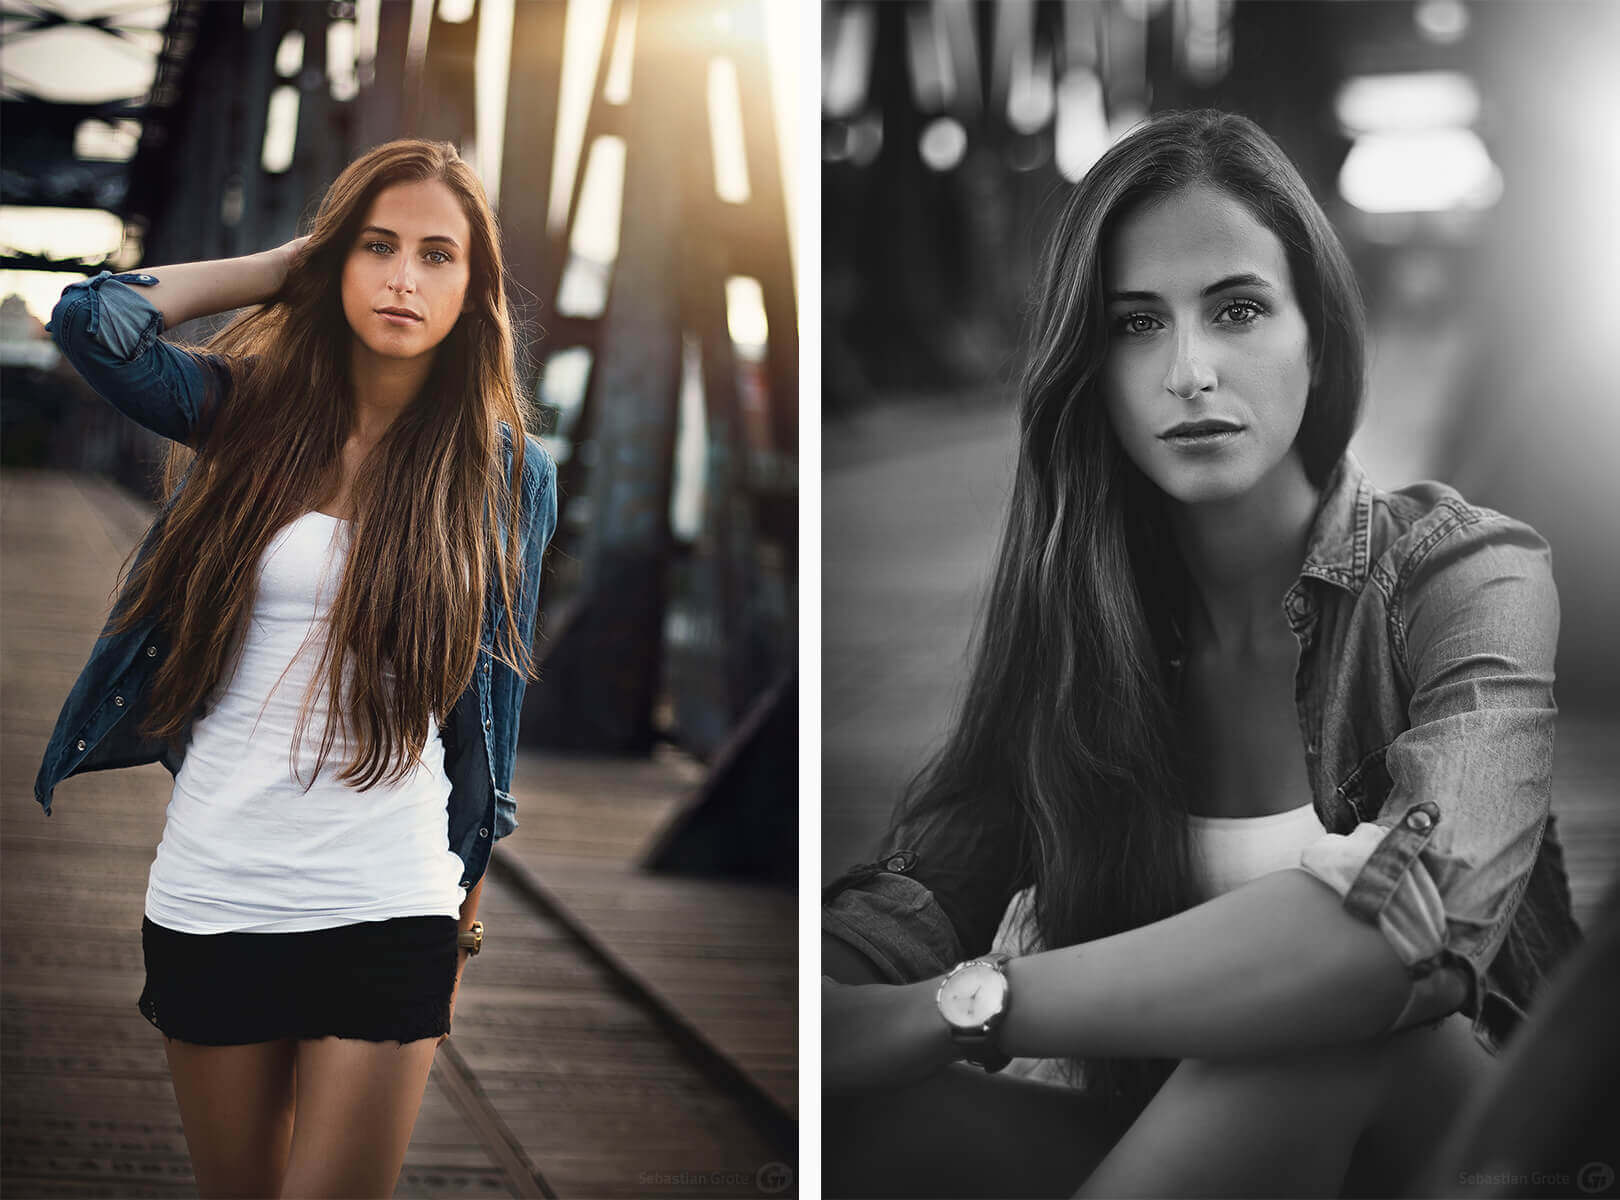 Anna-Lisa 9 und 10 - Shooting in Magdeburg